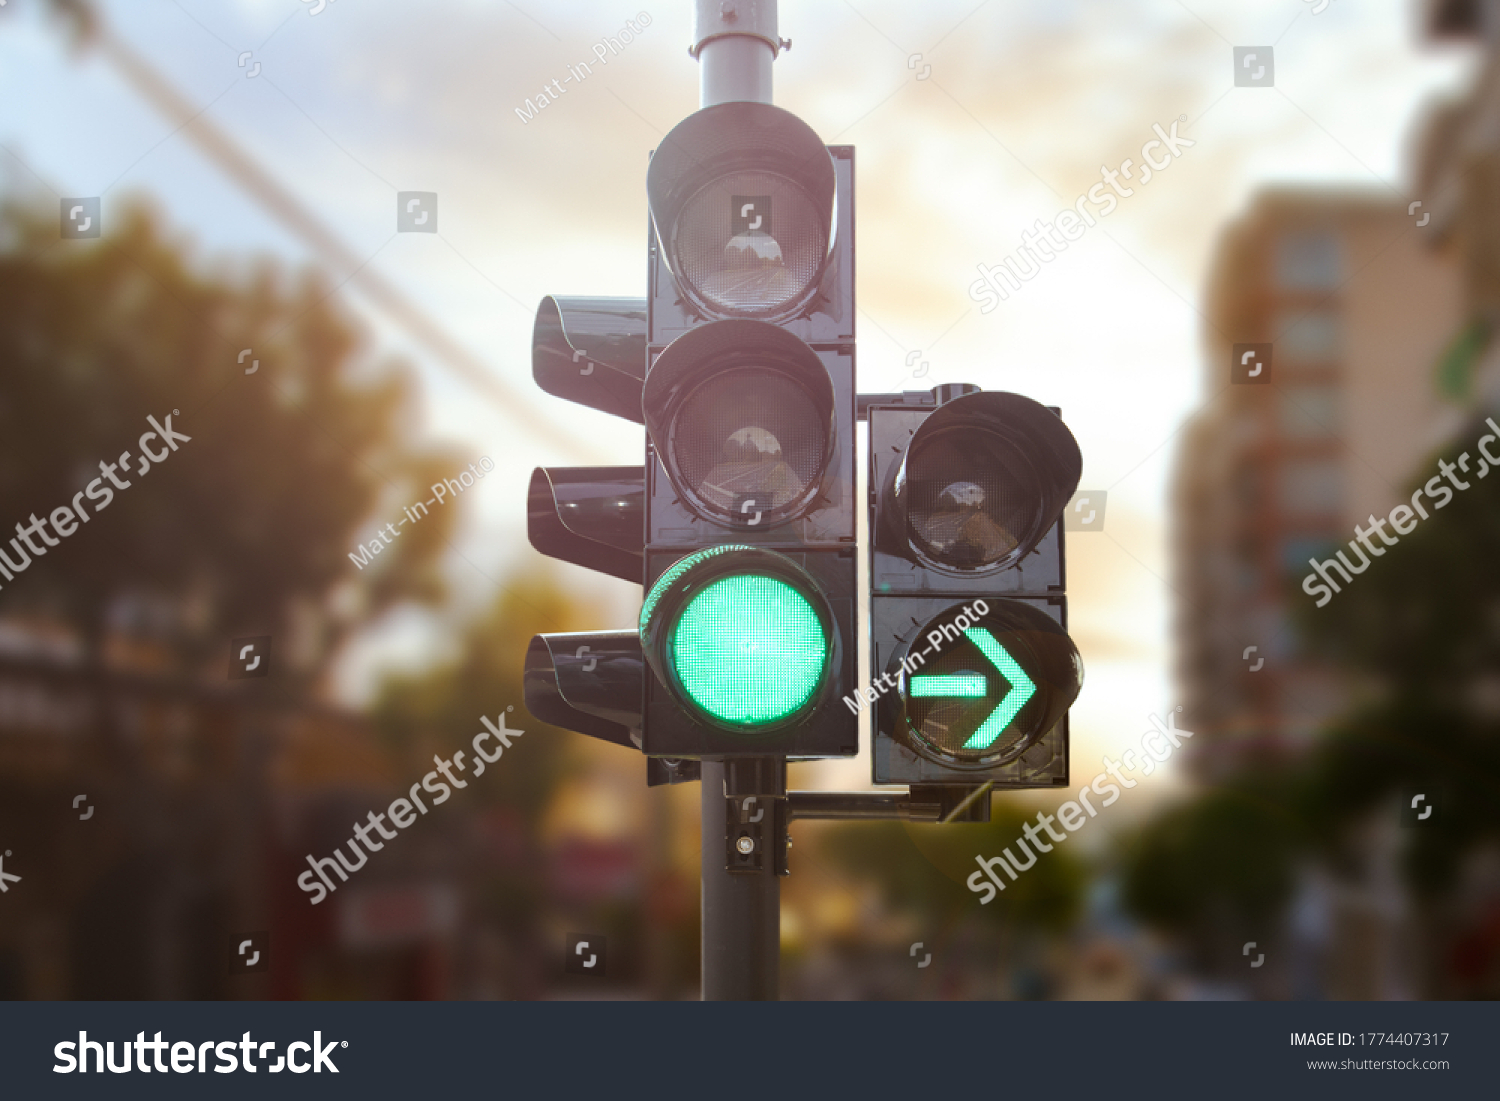 Green traffic light with green arrow light up in city while sunset allows car to turn right #1774407317